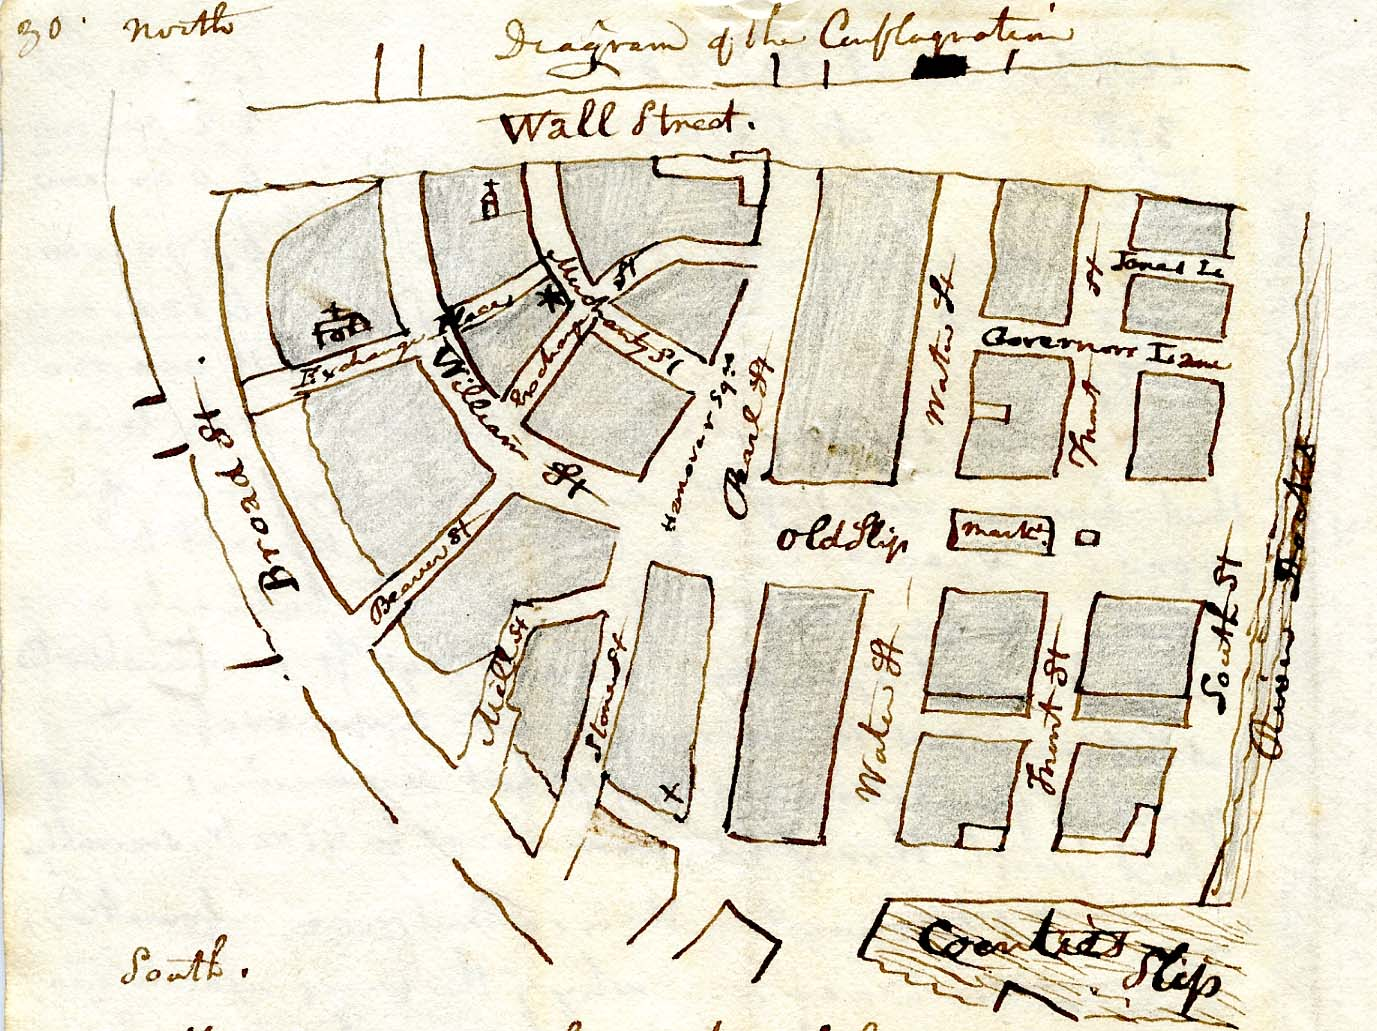 Watson's hand-drawn diagram in his diary of the southeast Manhattan area affected by the Great Fire of New York City in 1835, Winterthur Library, Joseph Downs Collection of Manuscripts and Printed Ephemera